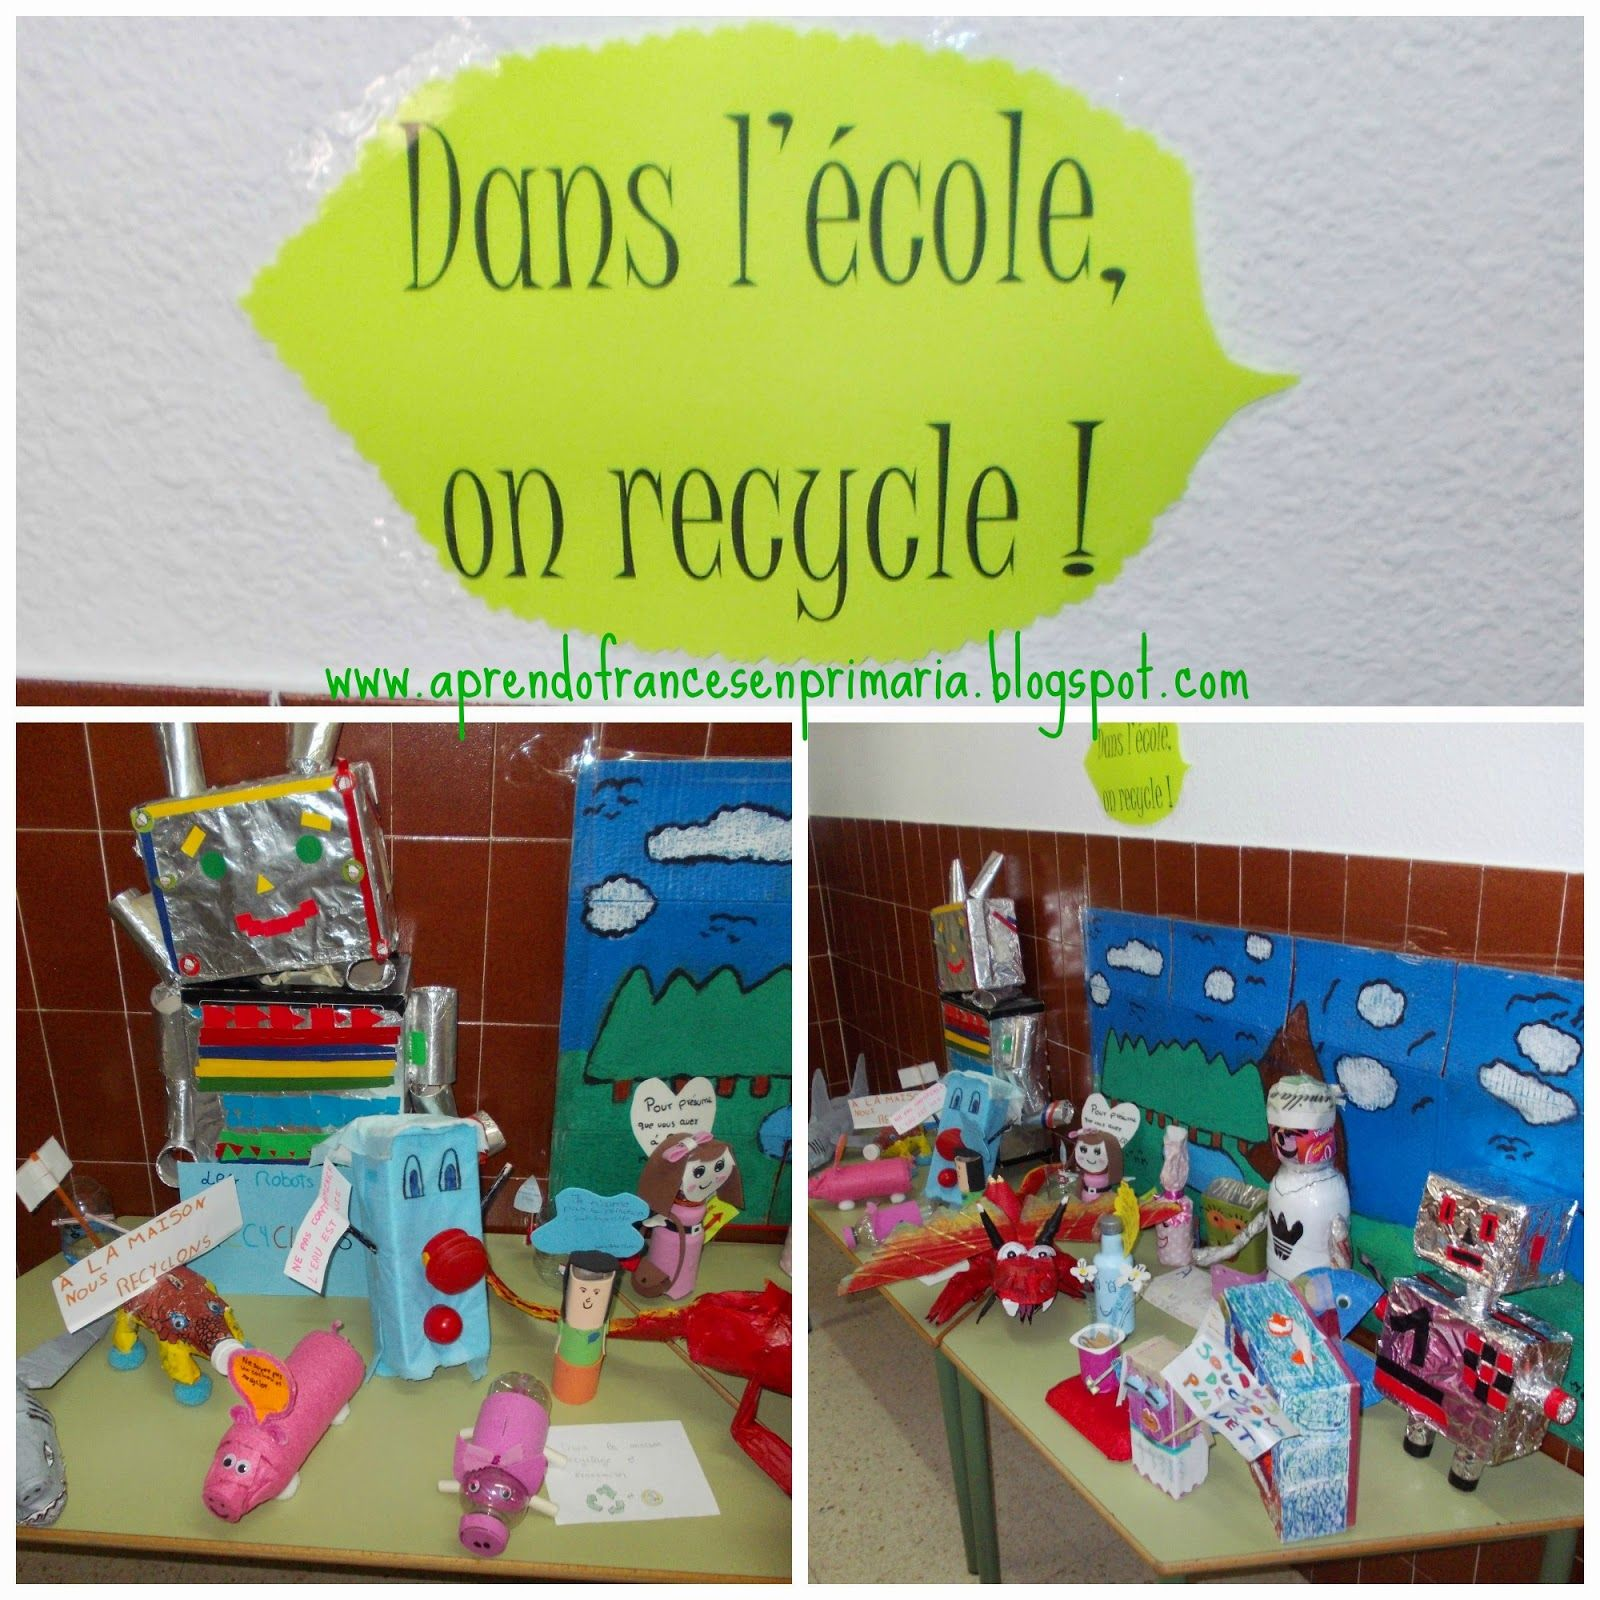 On recycle !